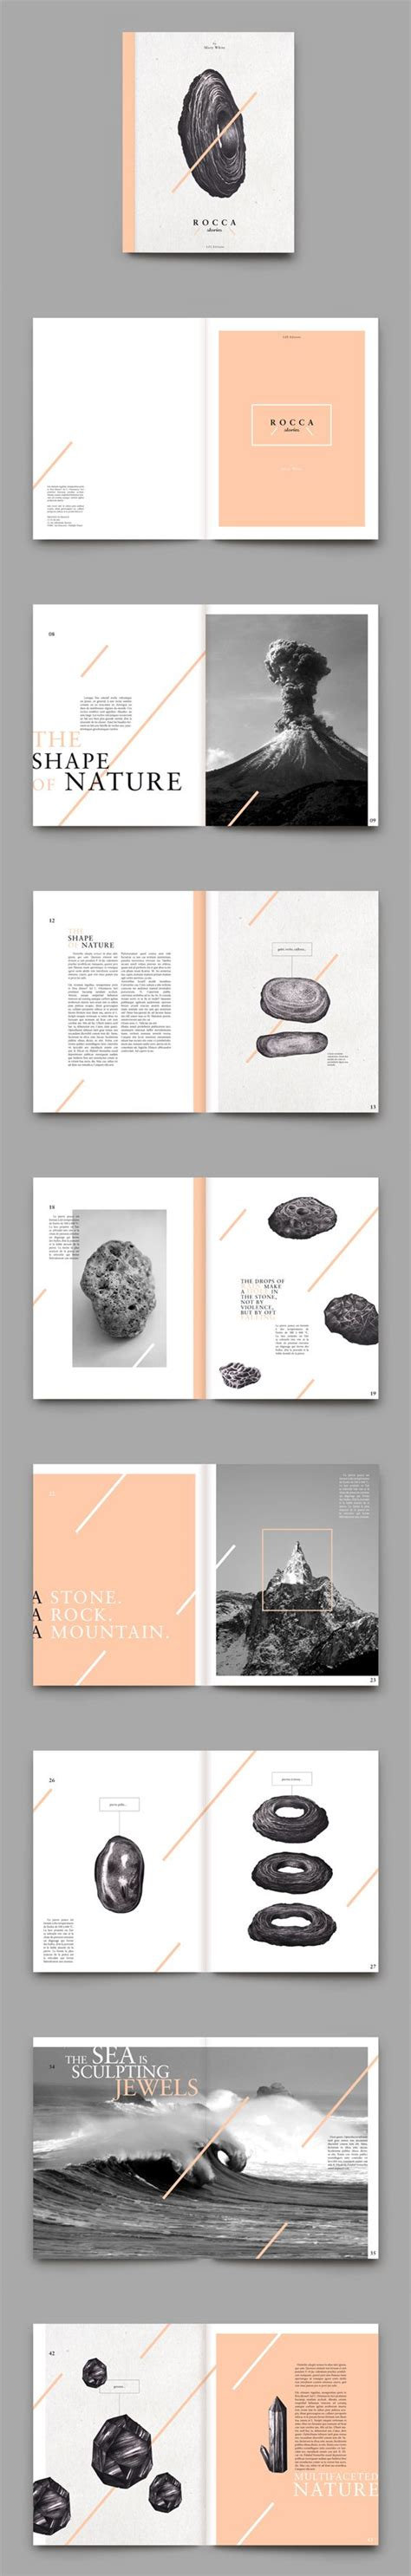 pinterest layout design inspiration r o c c a stories magazine layout design graphic